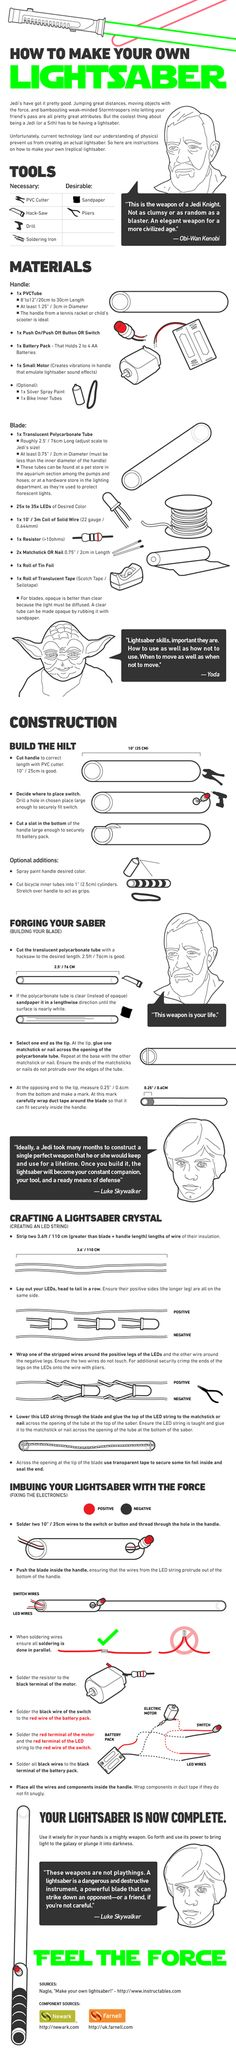 How to make your own lightsaber! Sounds like an awesome summer project :)